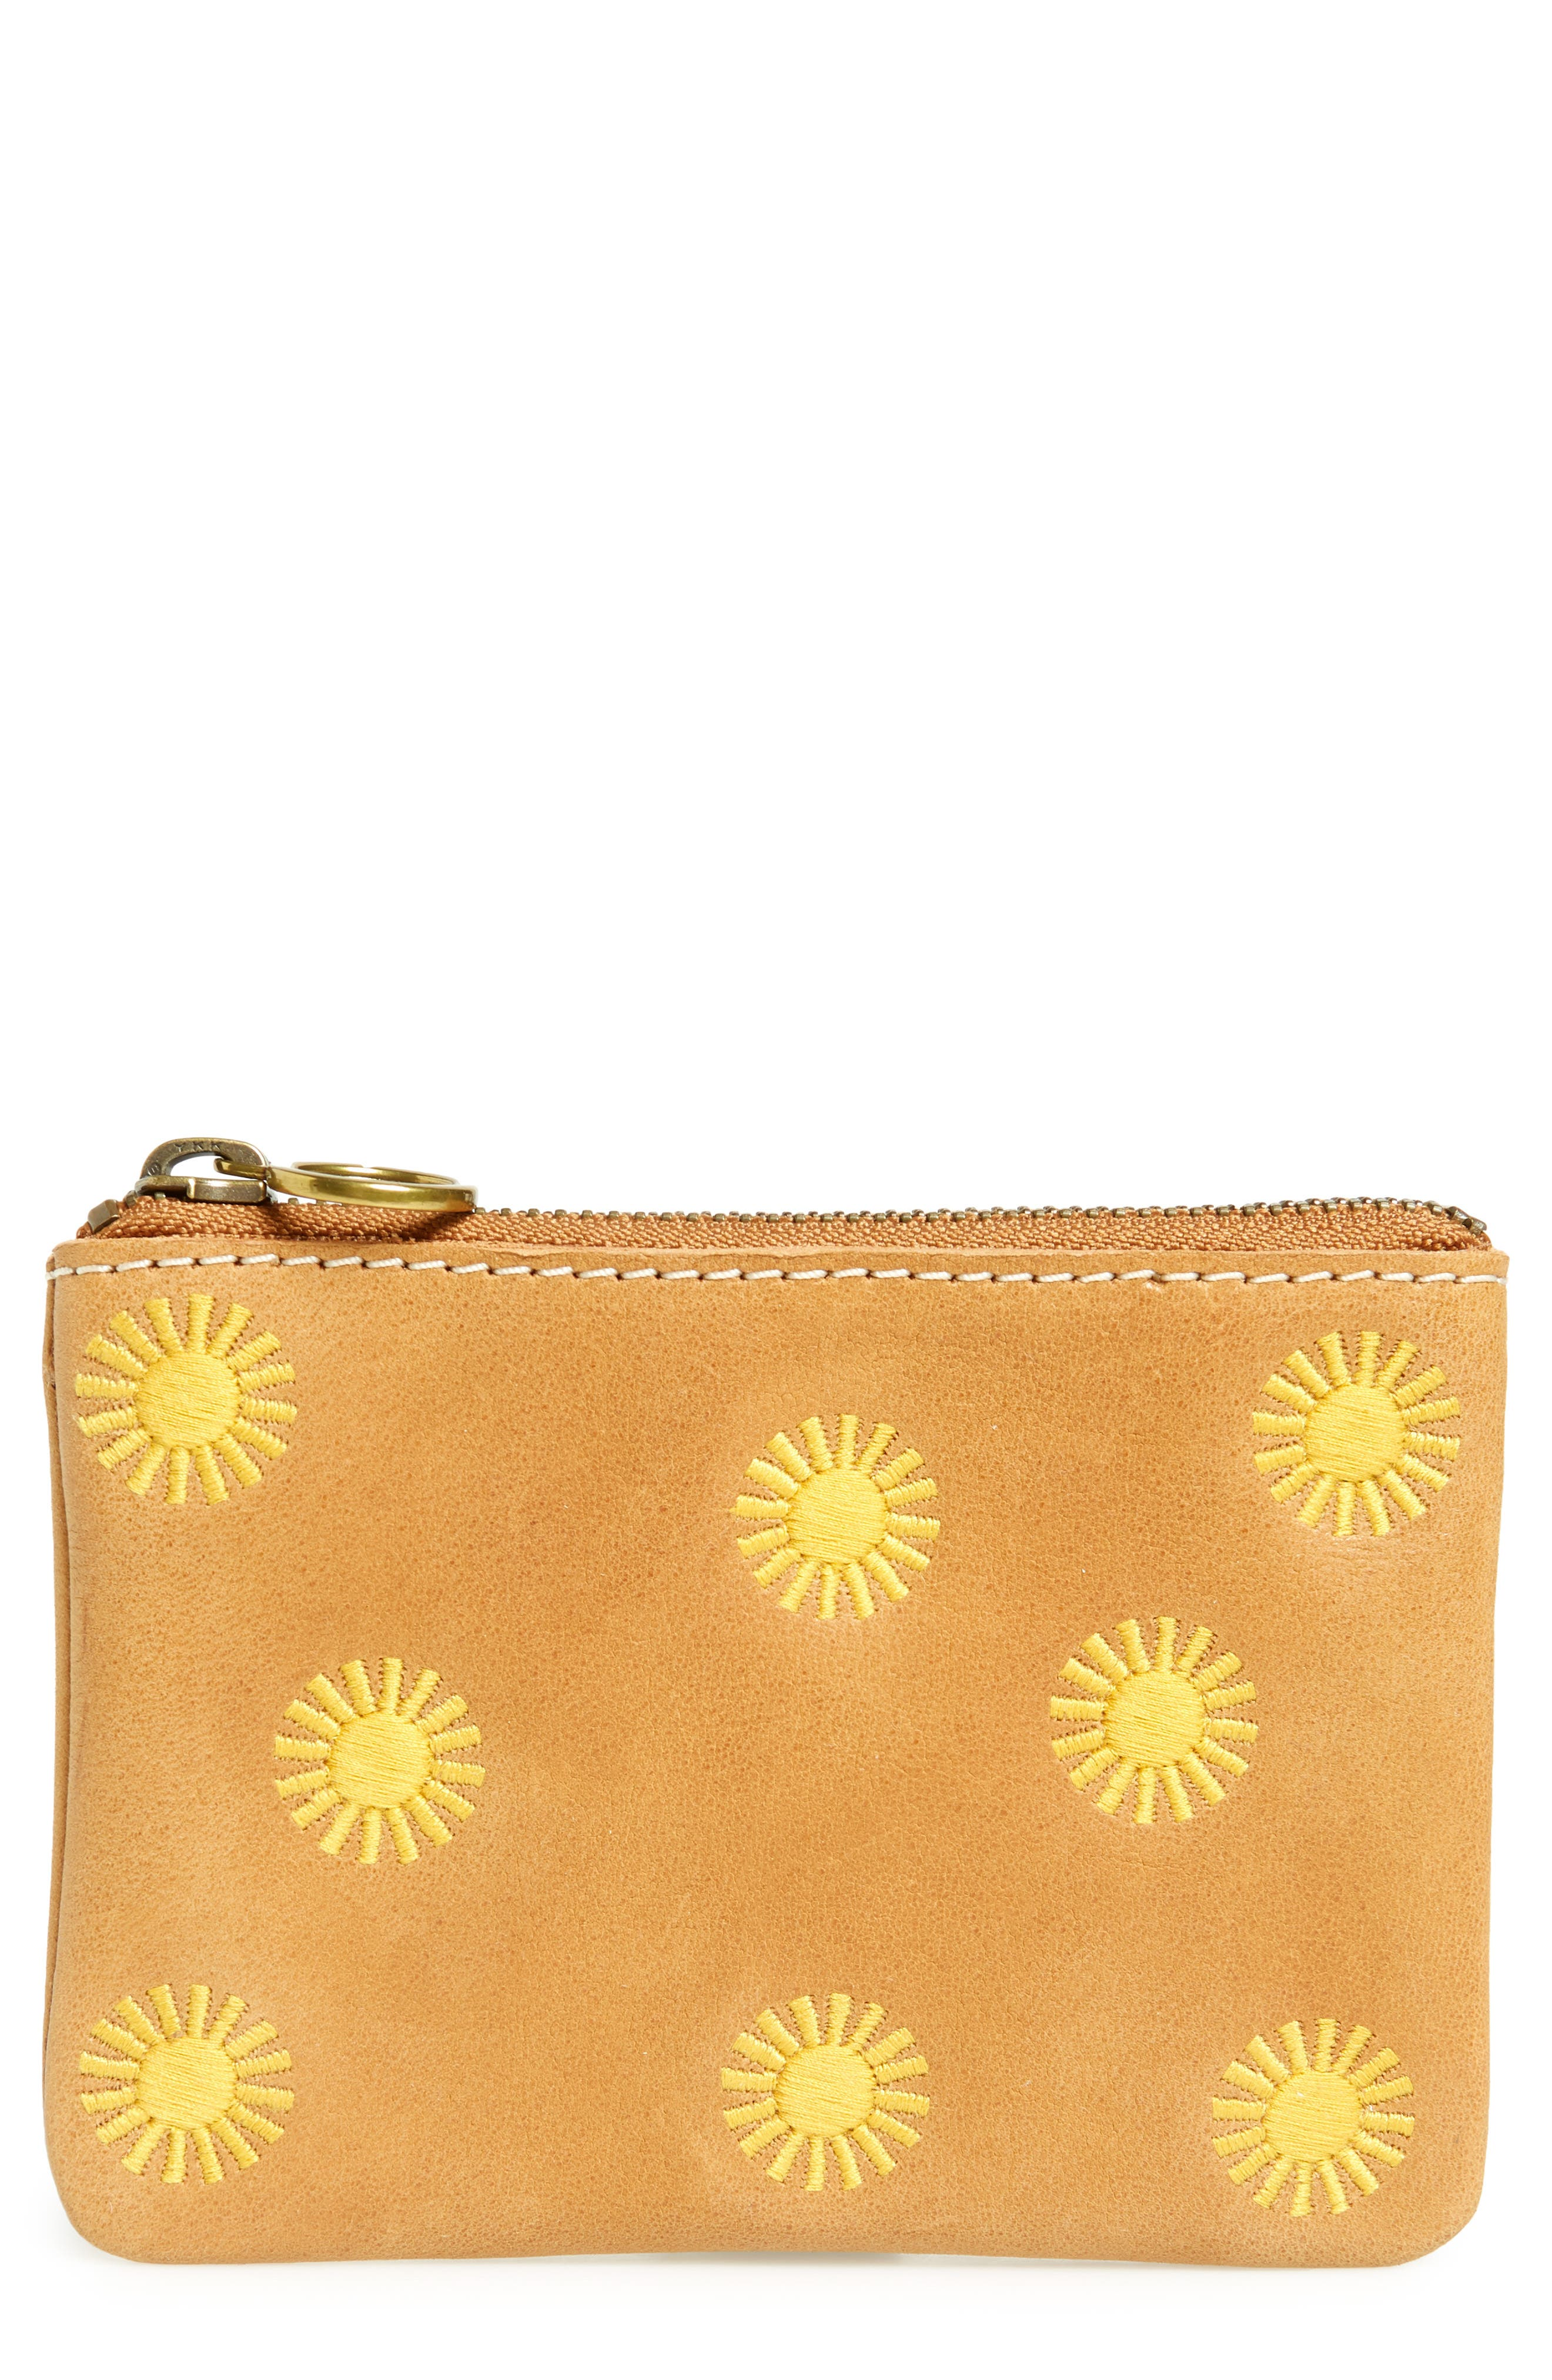 Sun Embroidered Small Flat Zip Pouch,                             Main thumbnail 1, color,                             200